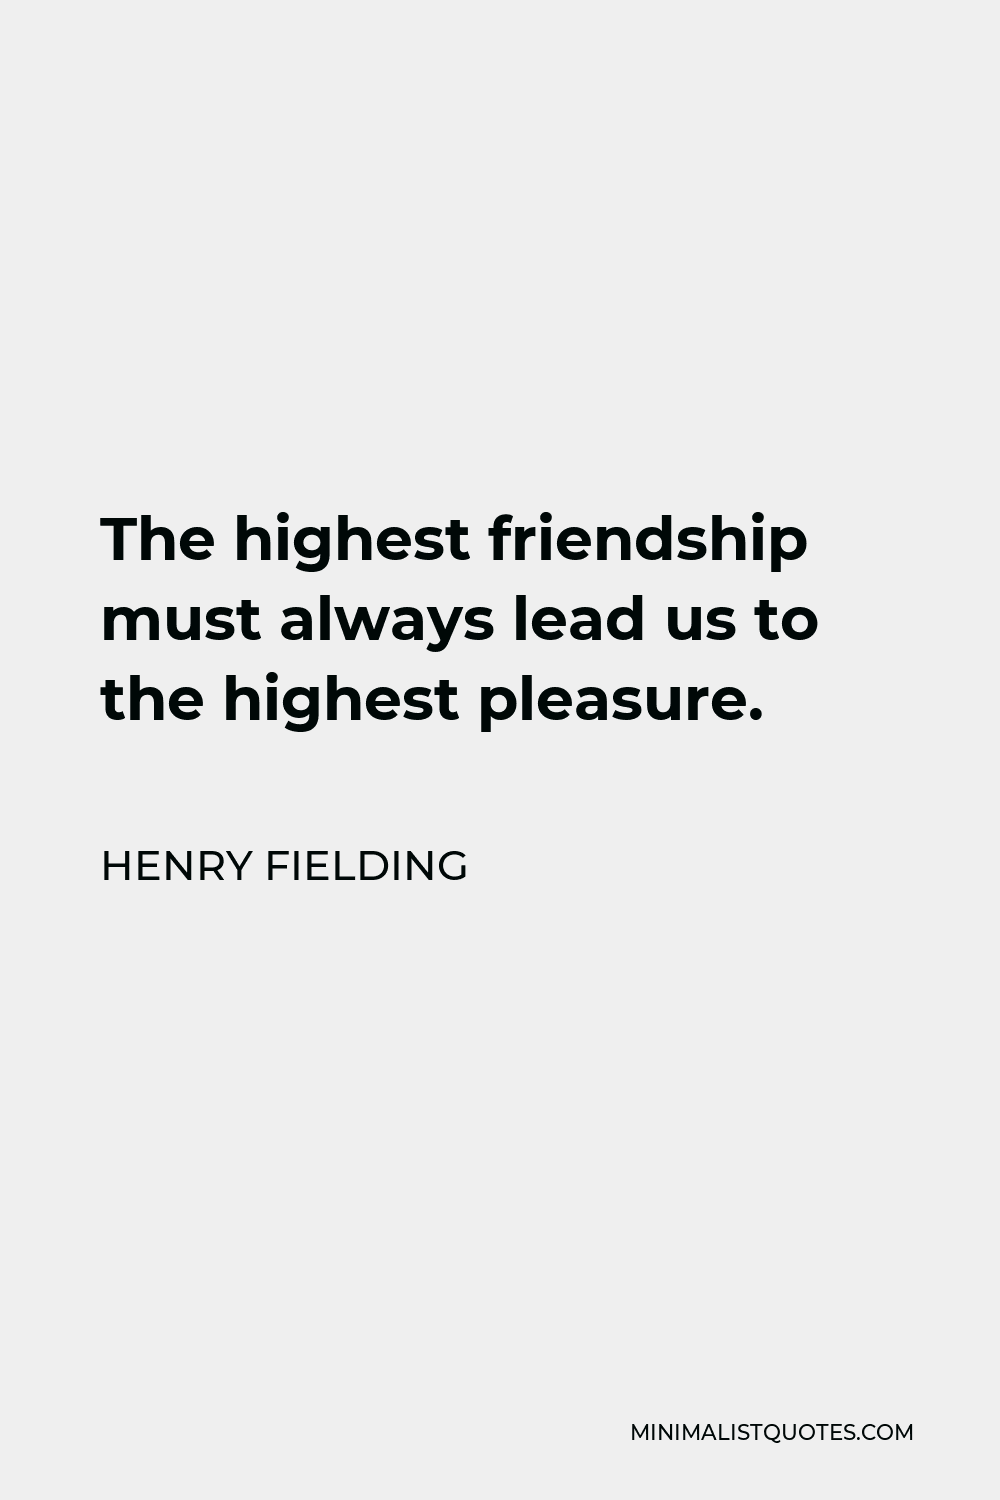 Henry Fielding Quote - The highest friendship must always lead us to the highest pleasure.